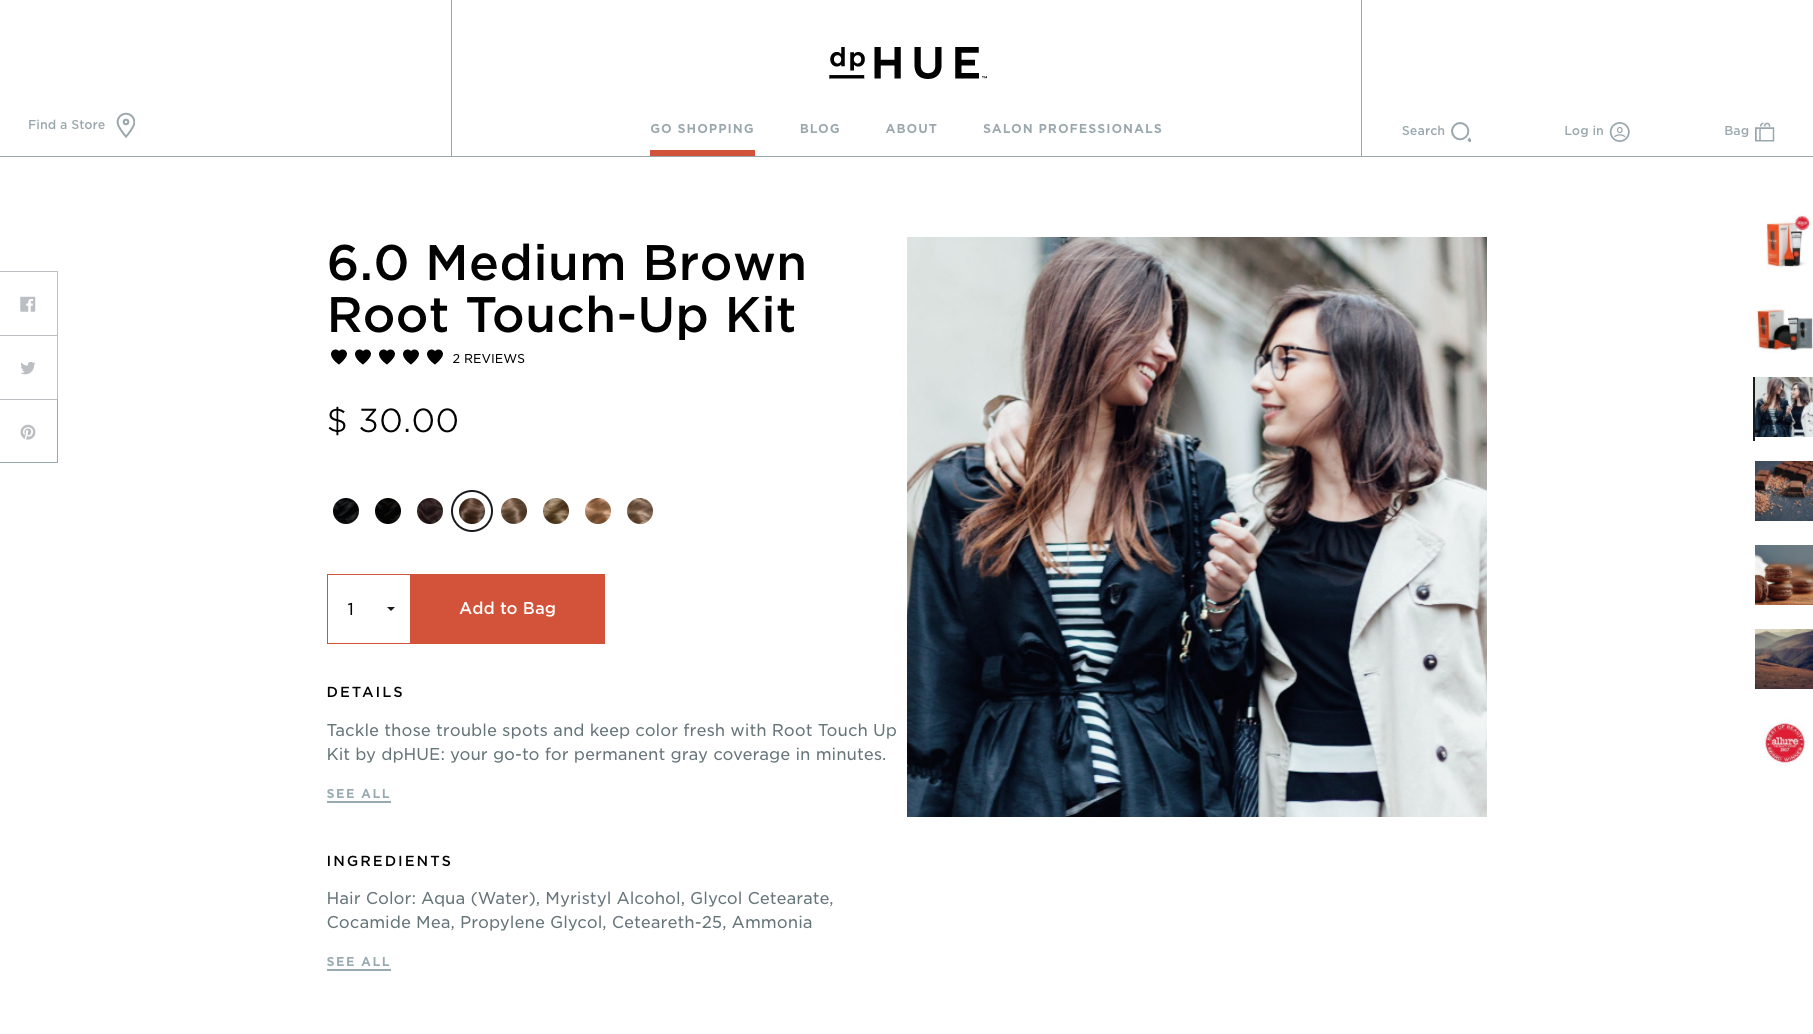 Client: Knock Inc. for DP Hue